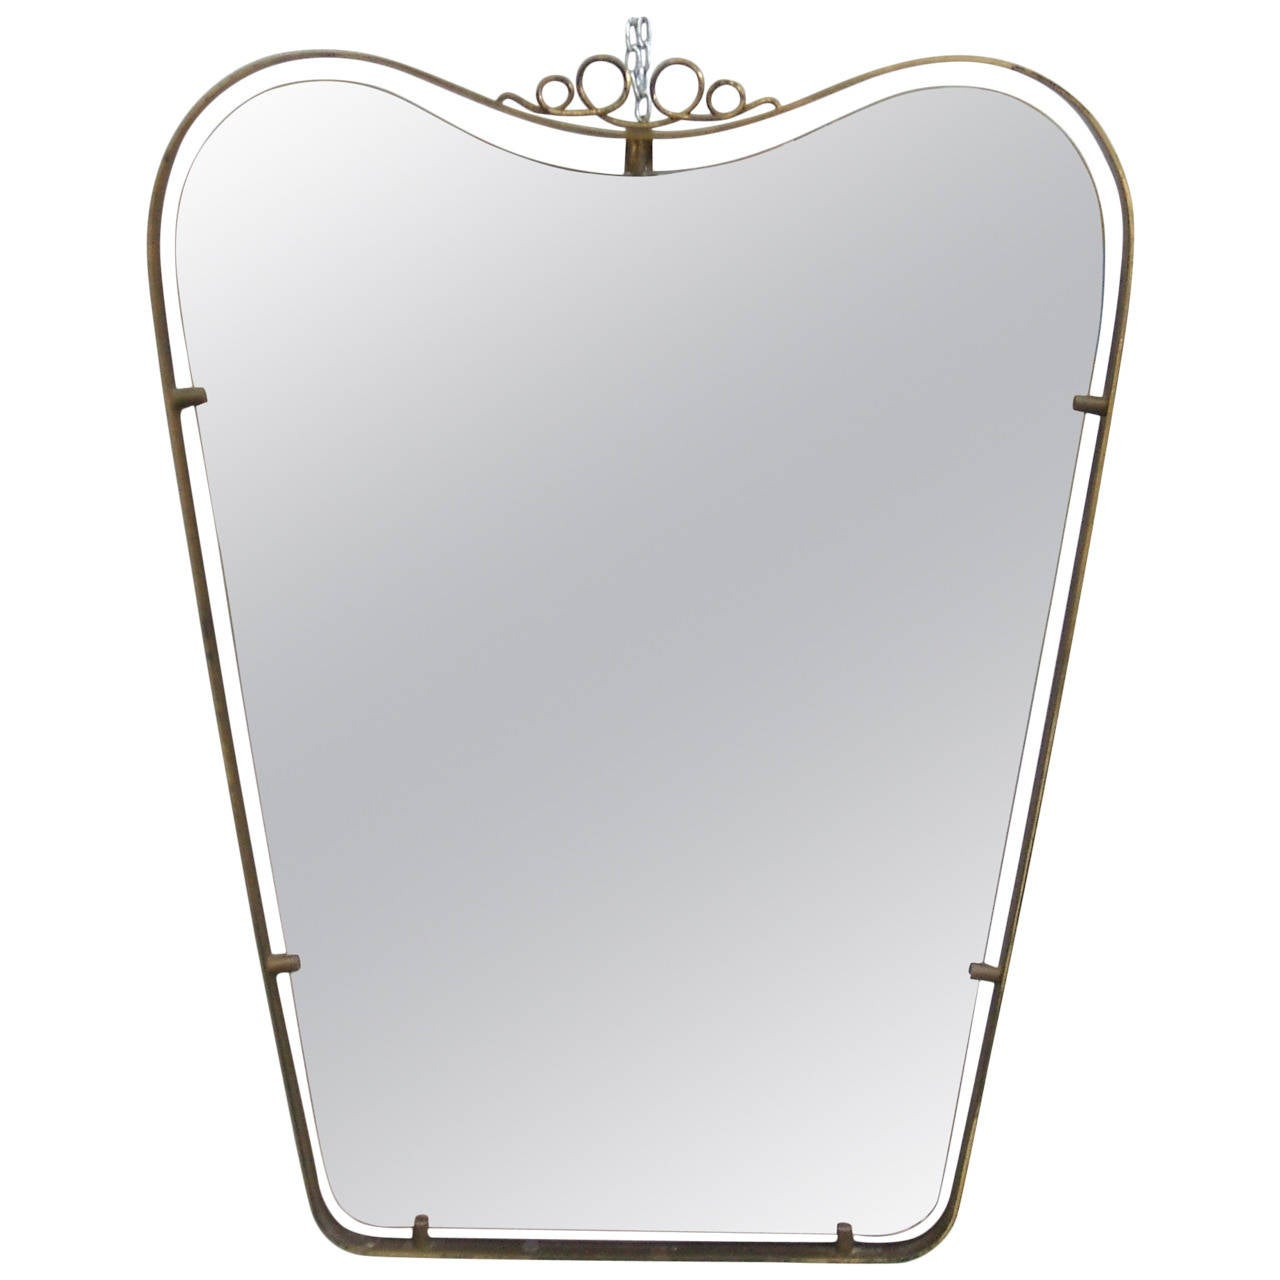 Brass Frame Mirror in the Style of Gio Ponti